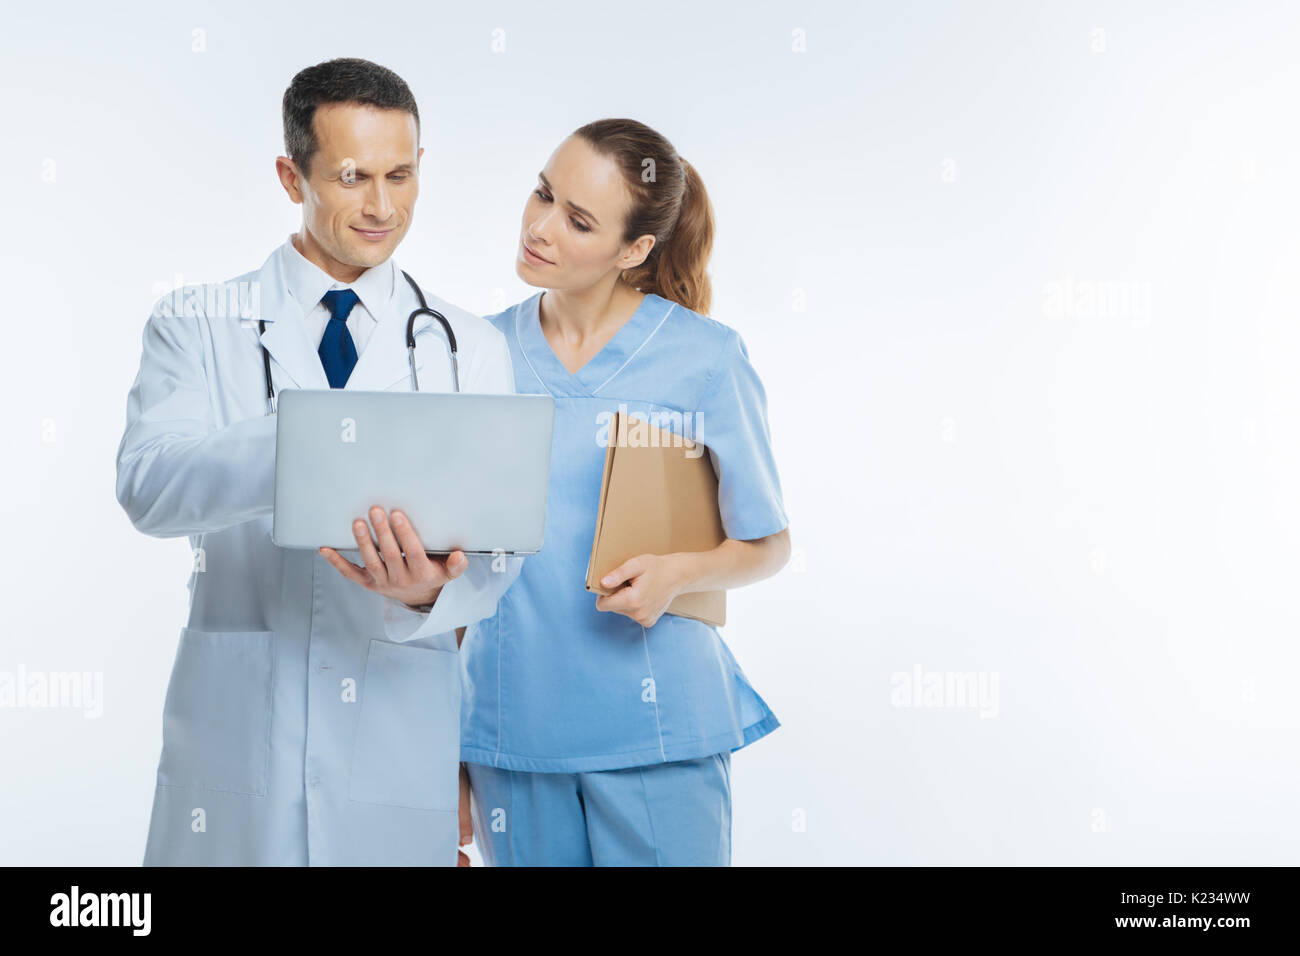 Interested medical workers looking at laptop - Stock Image